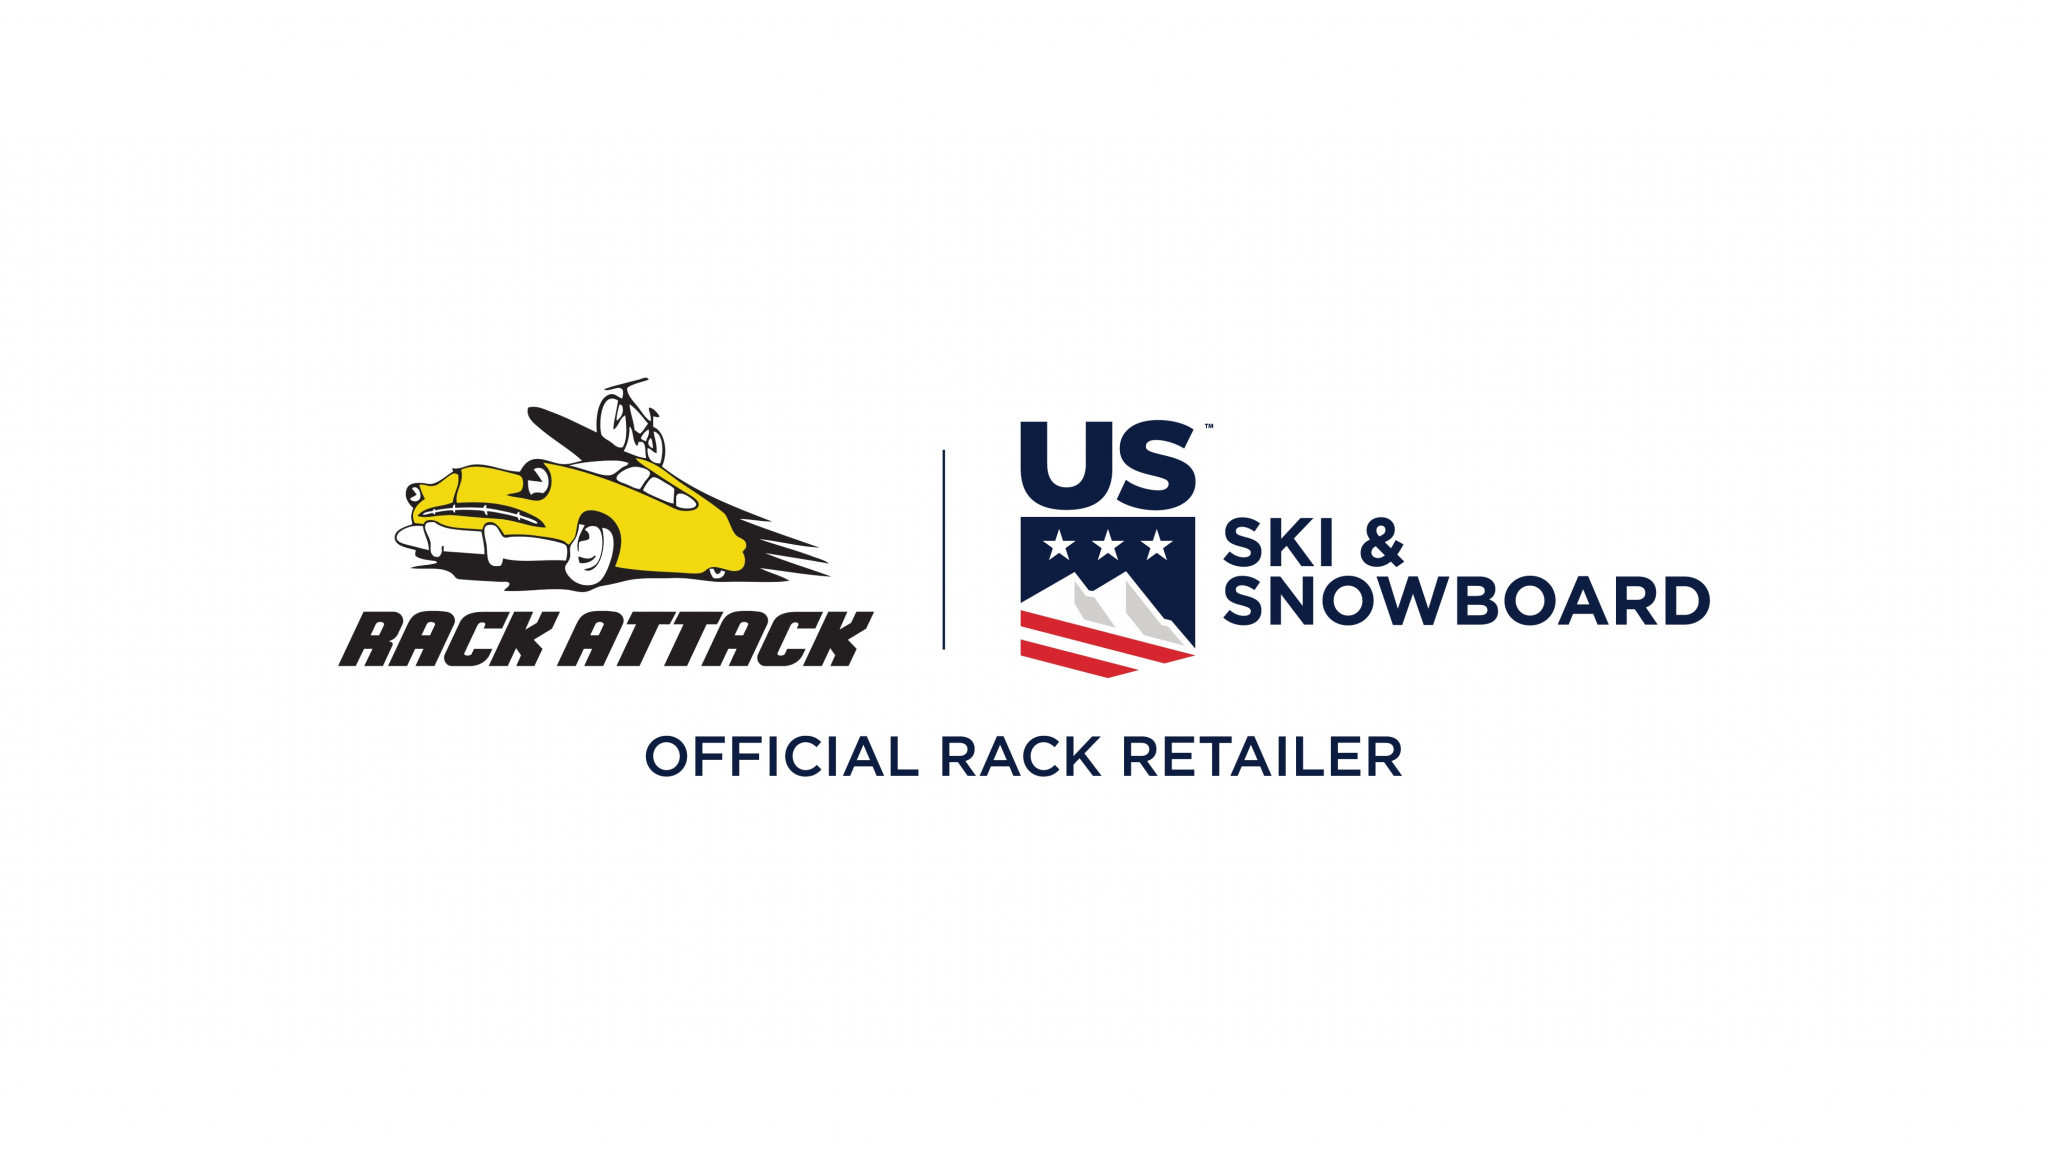 US Ski and Snowboard names Rack Attack as official rack retailer